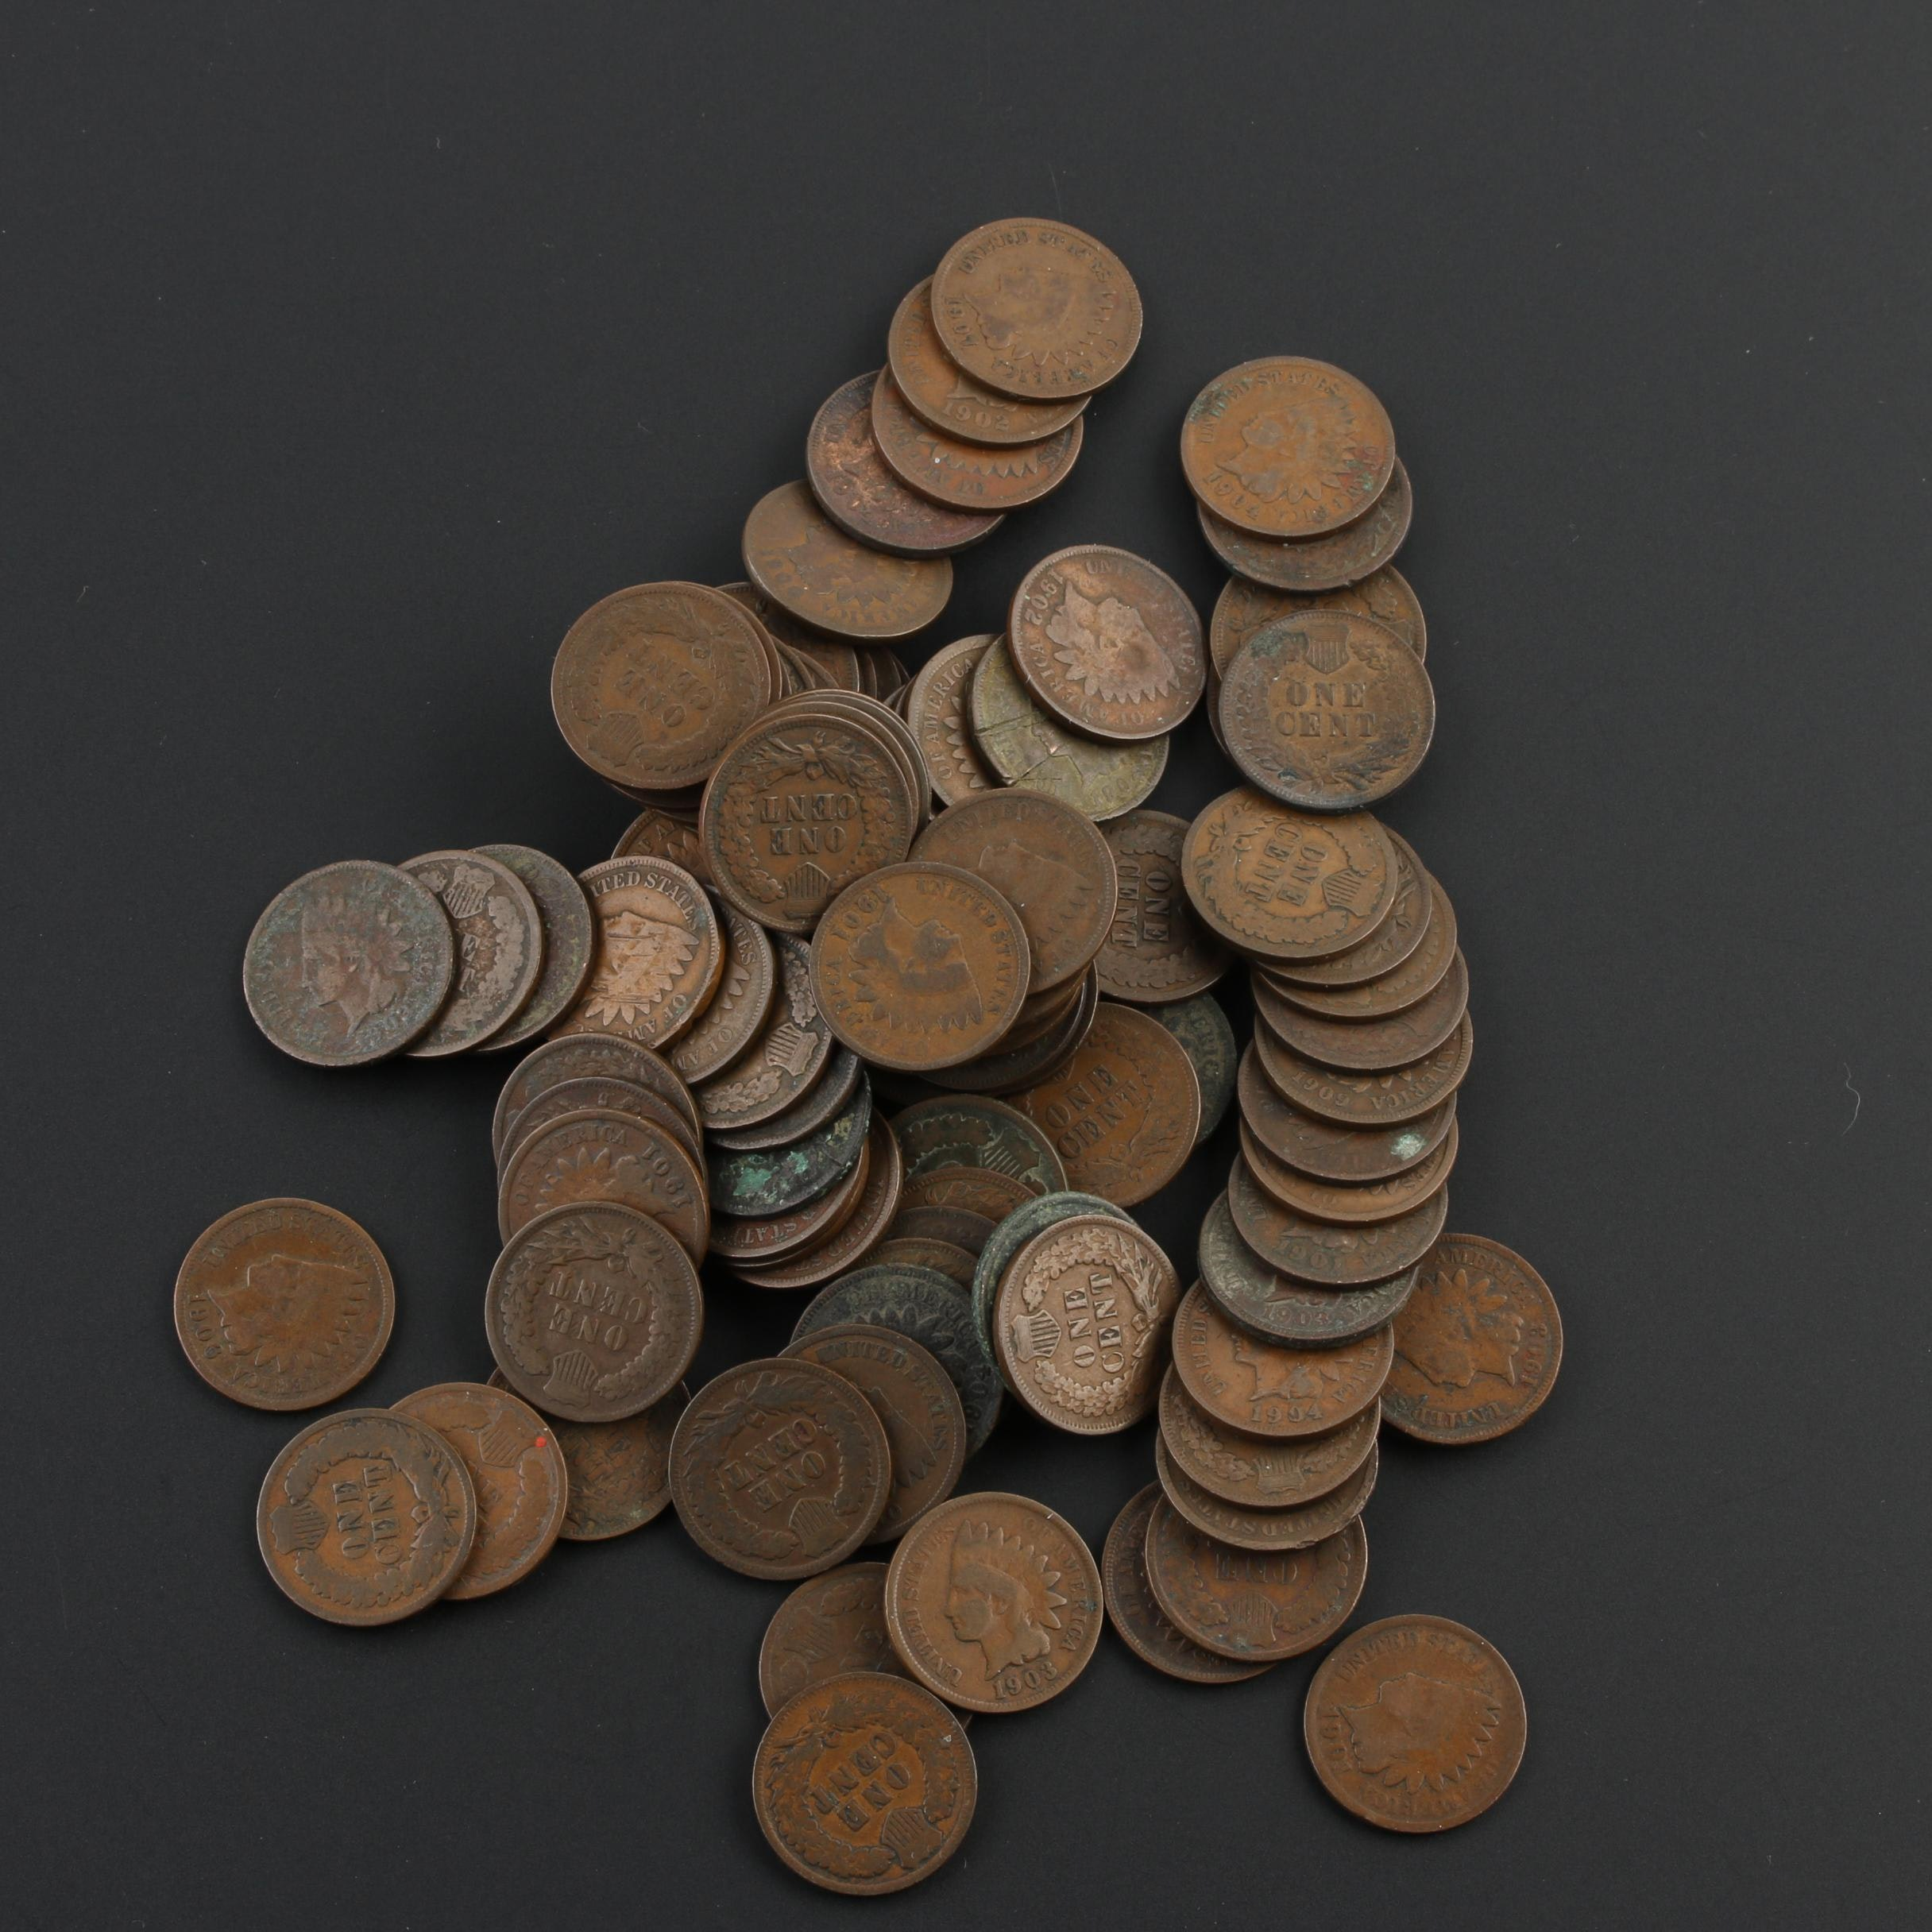 Group of 94 Indian Head Cents